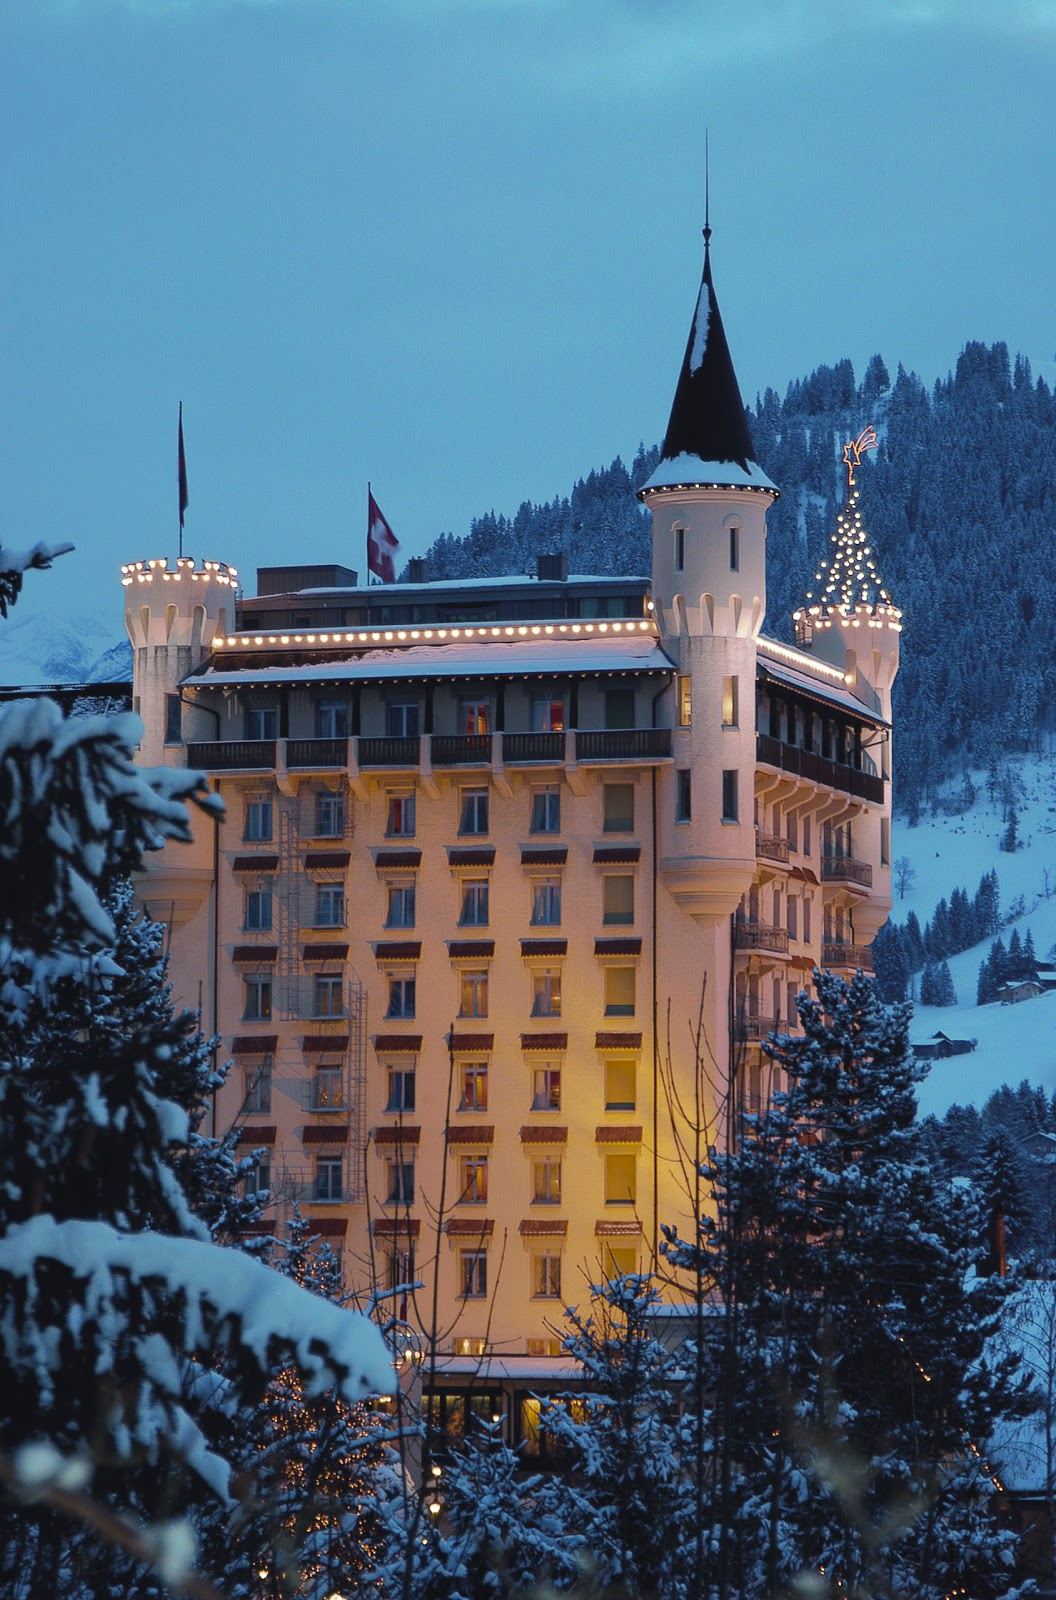 Welcome to Gstaad's Flagship Hotel and Spa - The Gstaad Palace. Photo: Gstaad Palace.